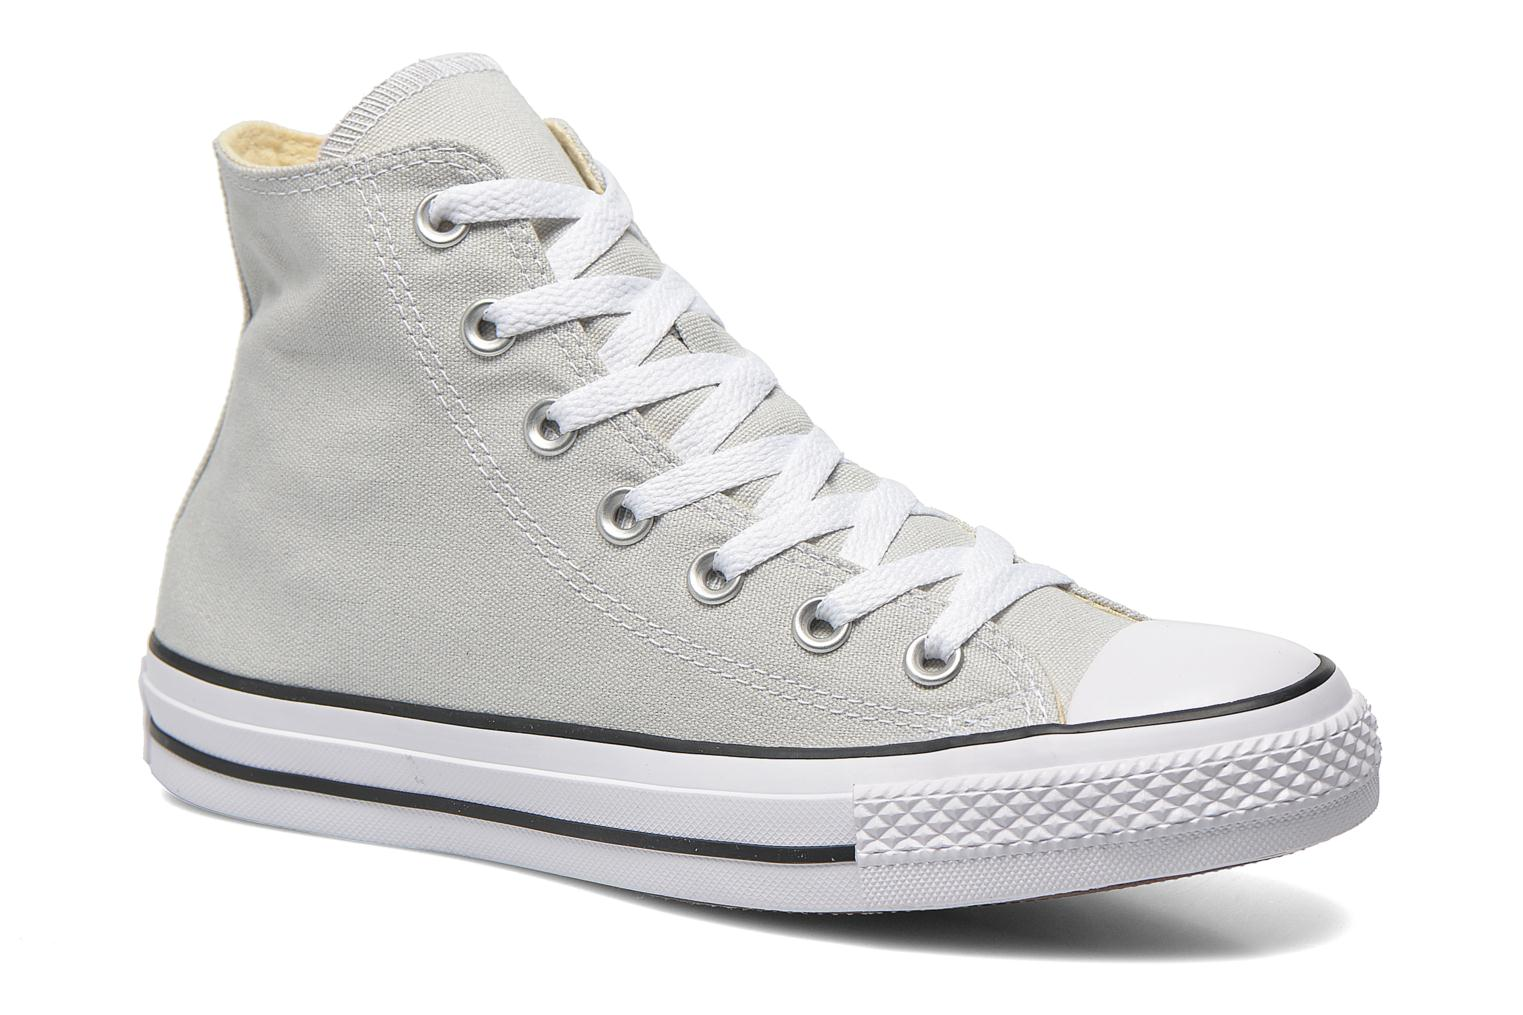 Chuck Taylor All Star Hi W Mouse-White-Black